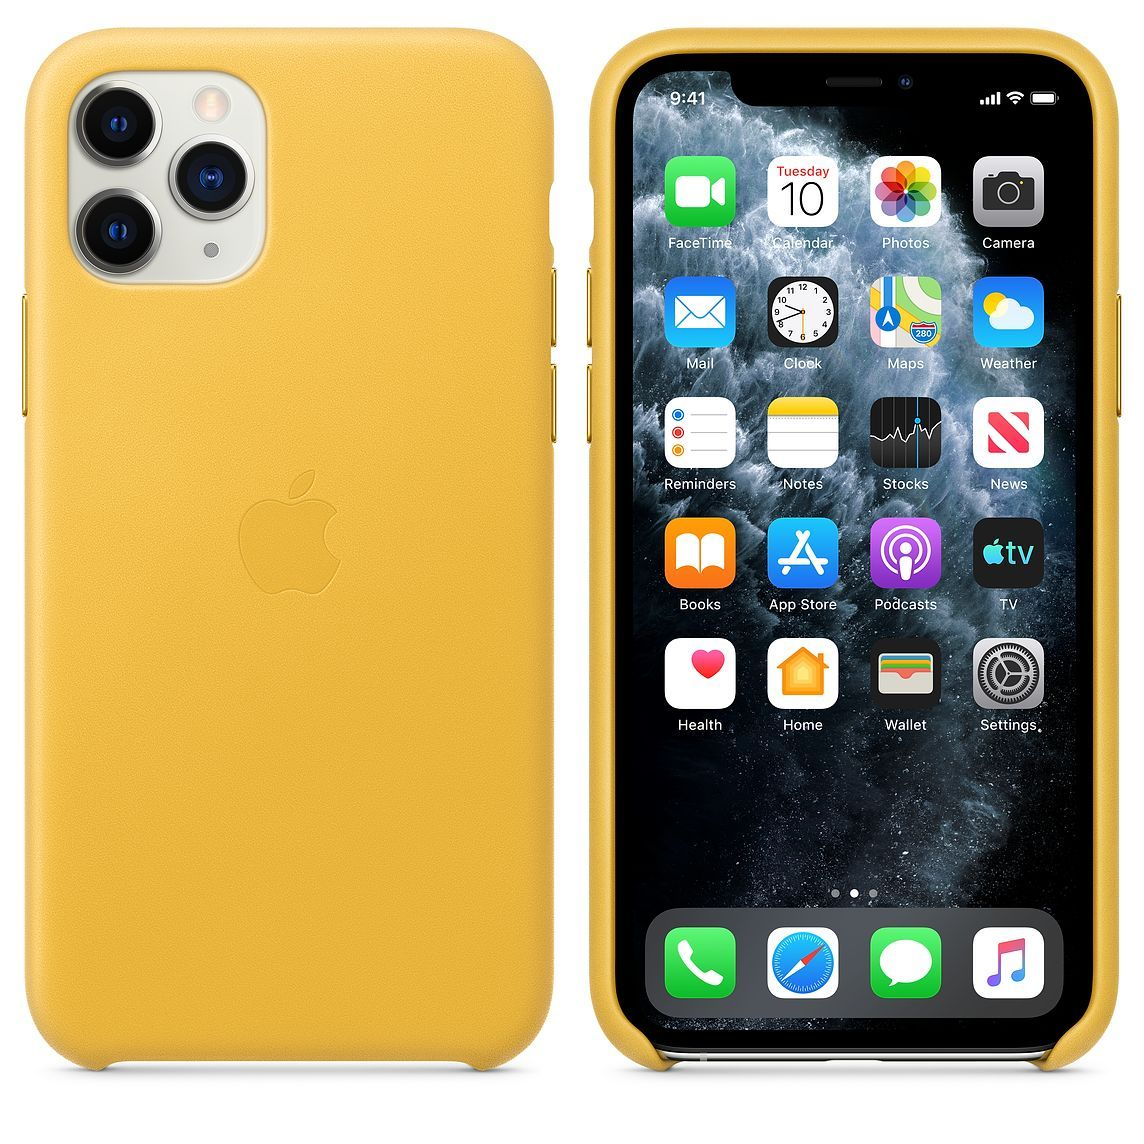 Iphone 11 Pro Leather Case Meyer Lemon With Images Iphone